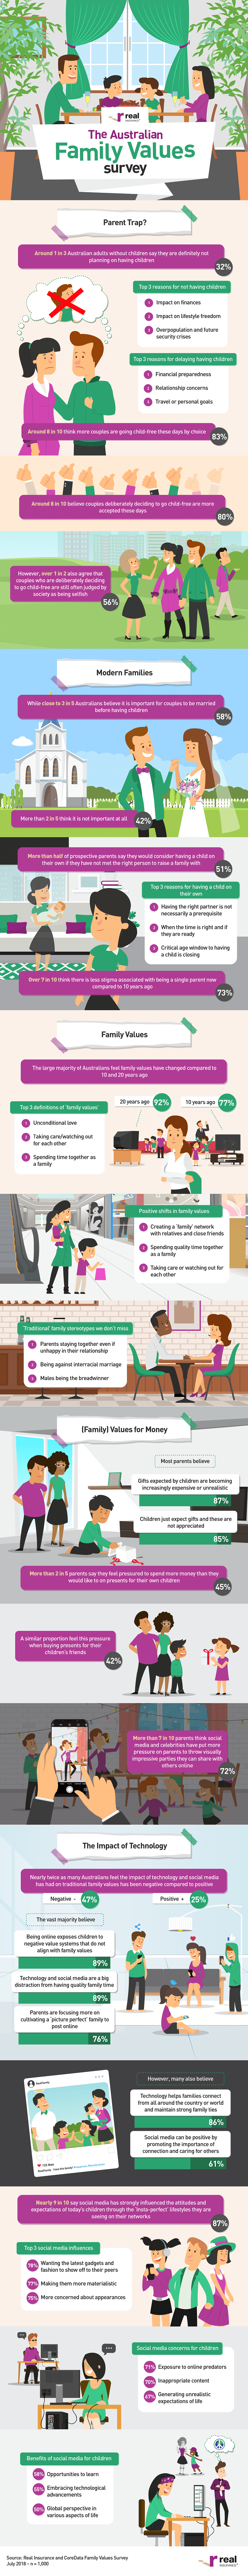 real insurance family values infographic